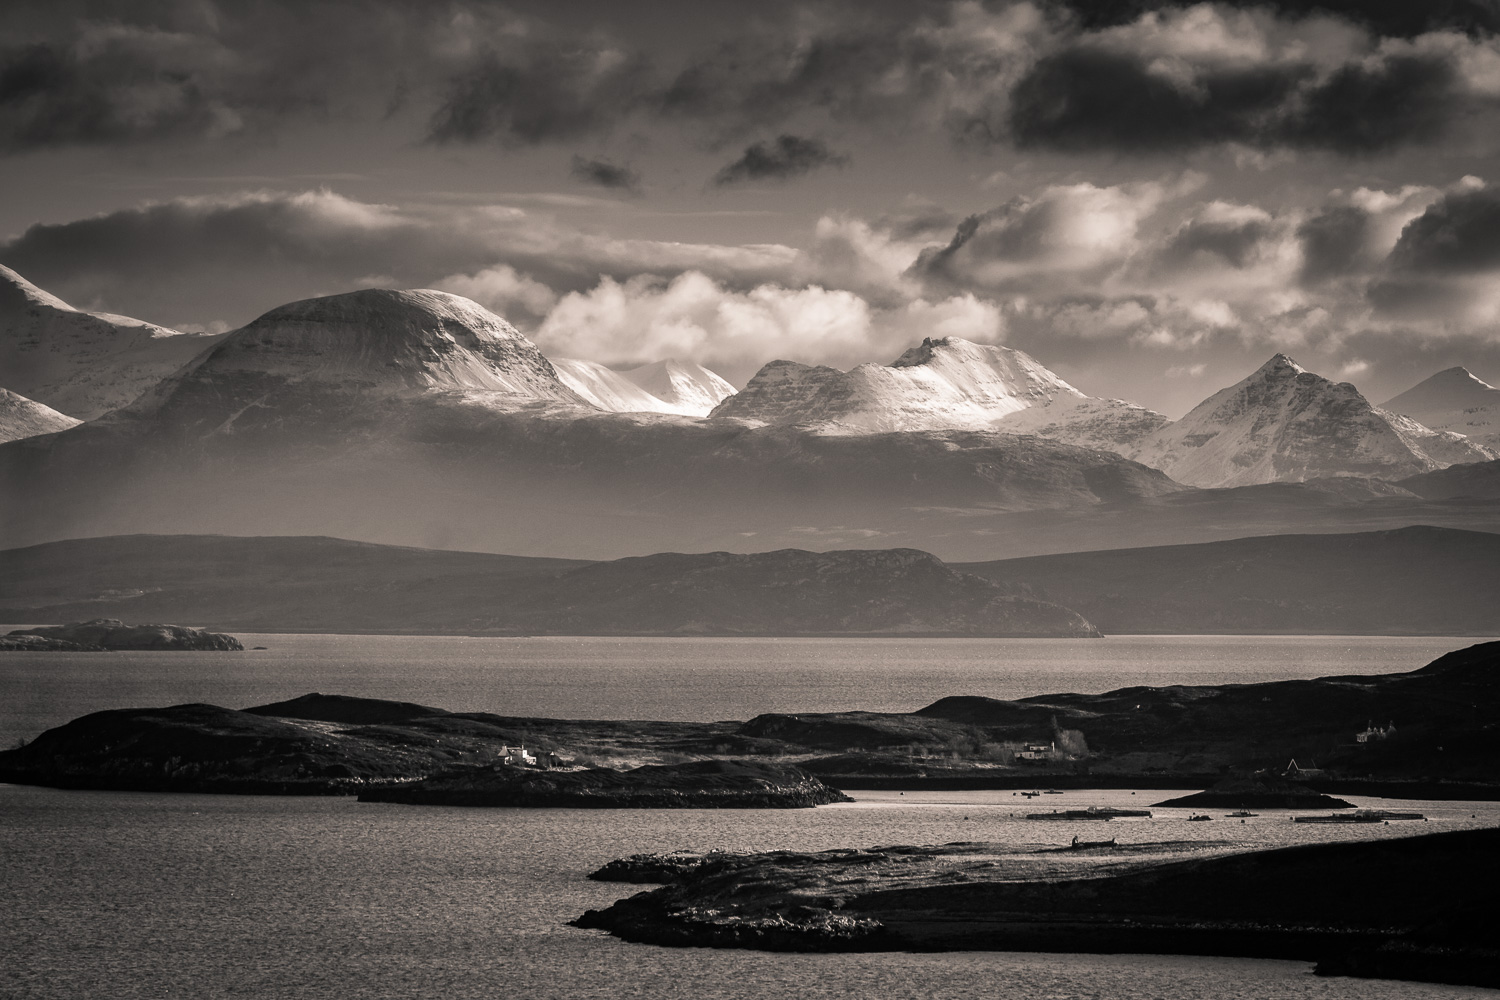 Across the Summer Isles with the dome of Sàil Bheag clearly in view.